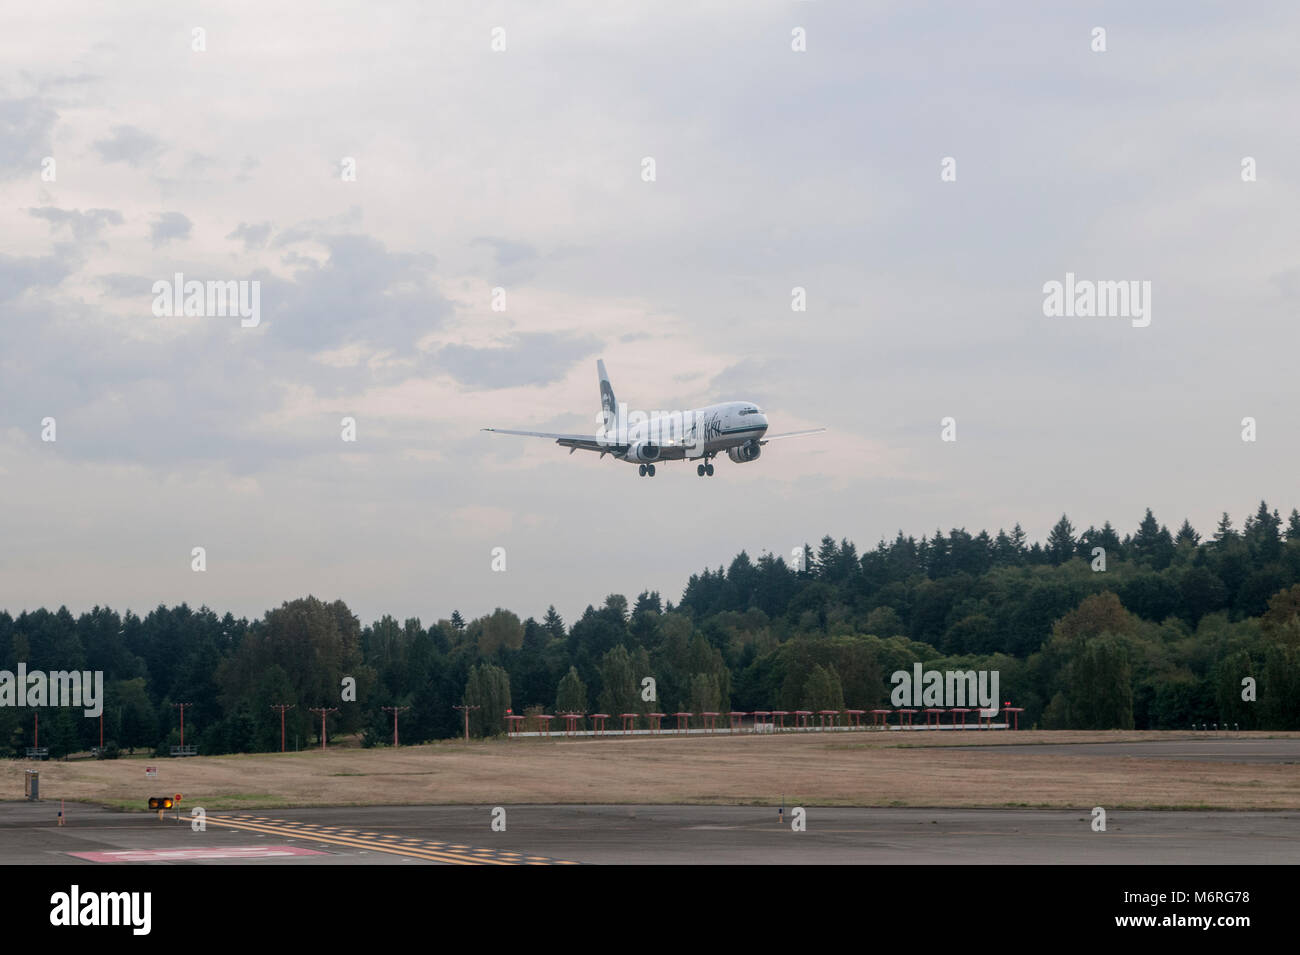 Alaska airlines stock photos alaska airlines stock images alamy seattle washington sea tac airport alaska airlines landing at the airport buycottarizona Choice Image